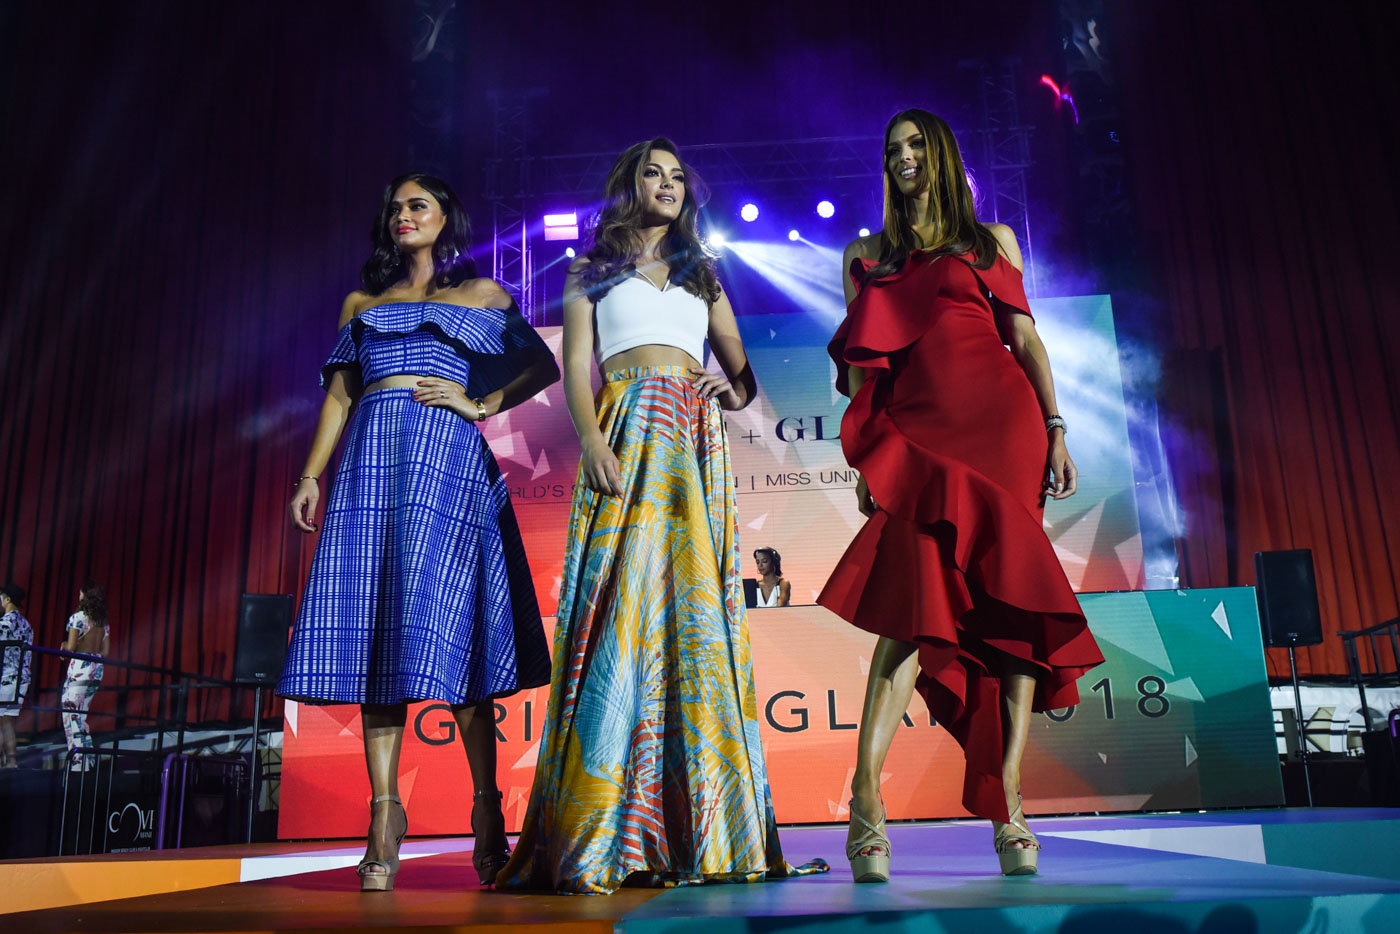 THE POWER OF 3. Pia Wurtzbach, Demi-Leigh Nel-Peters, and Iris Mittenaere.